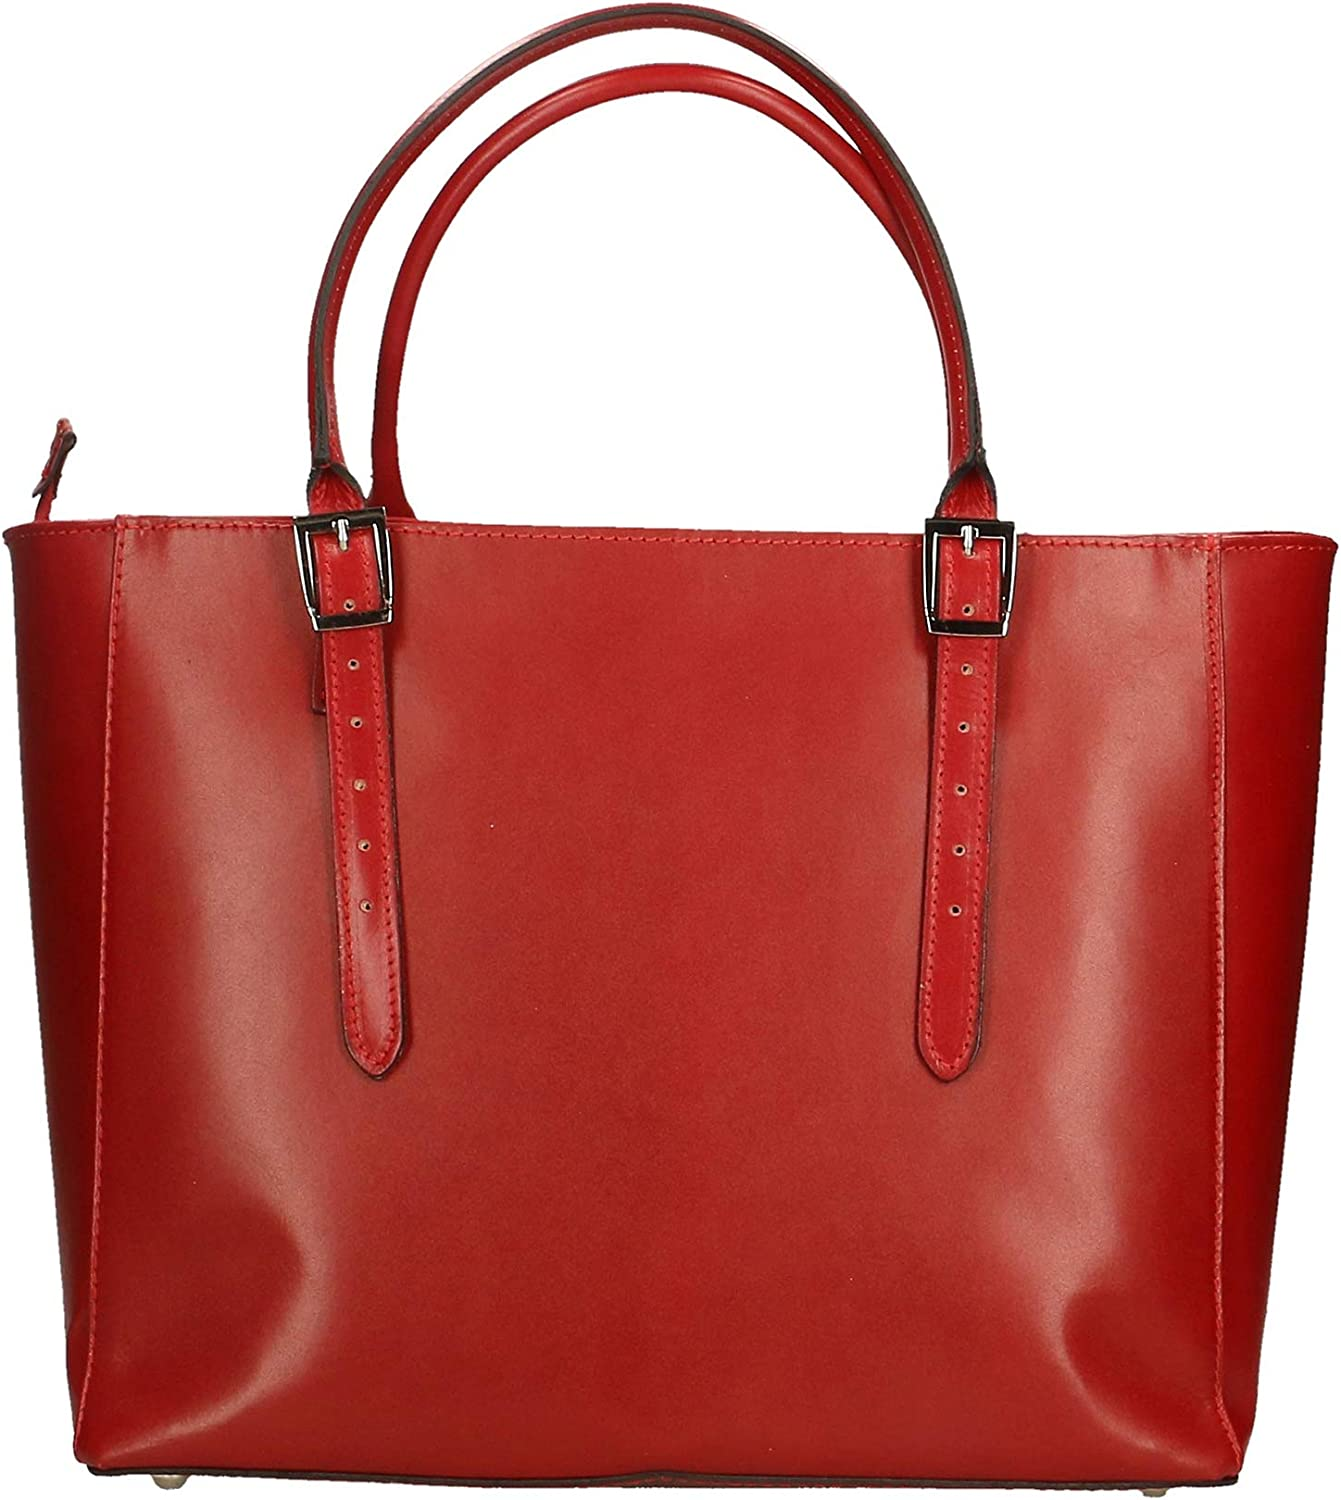 Chicca Borse Bag Borsa a Mano in Pelle Made in Italy 40x28x18 cm Rosso